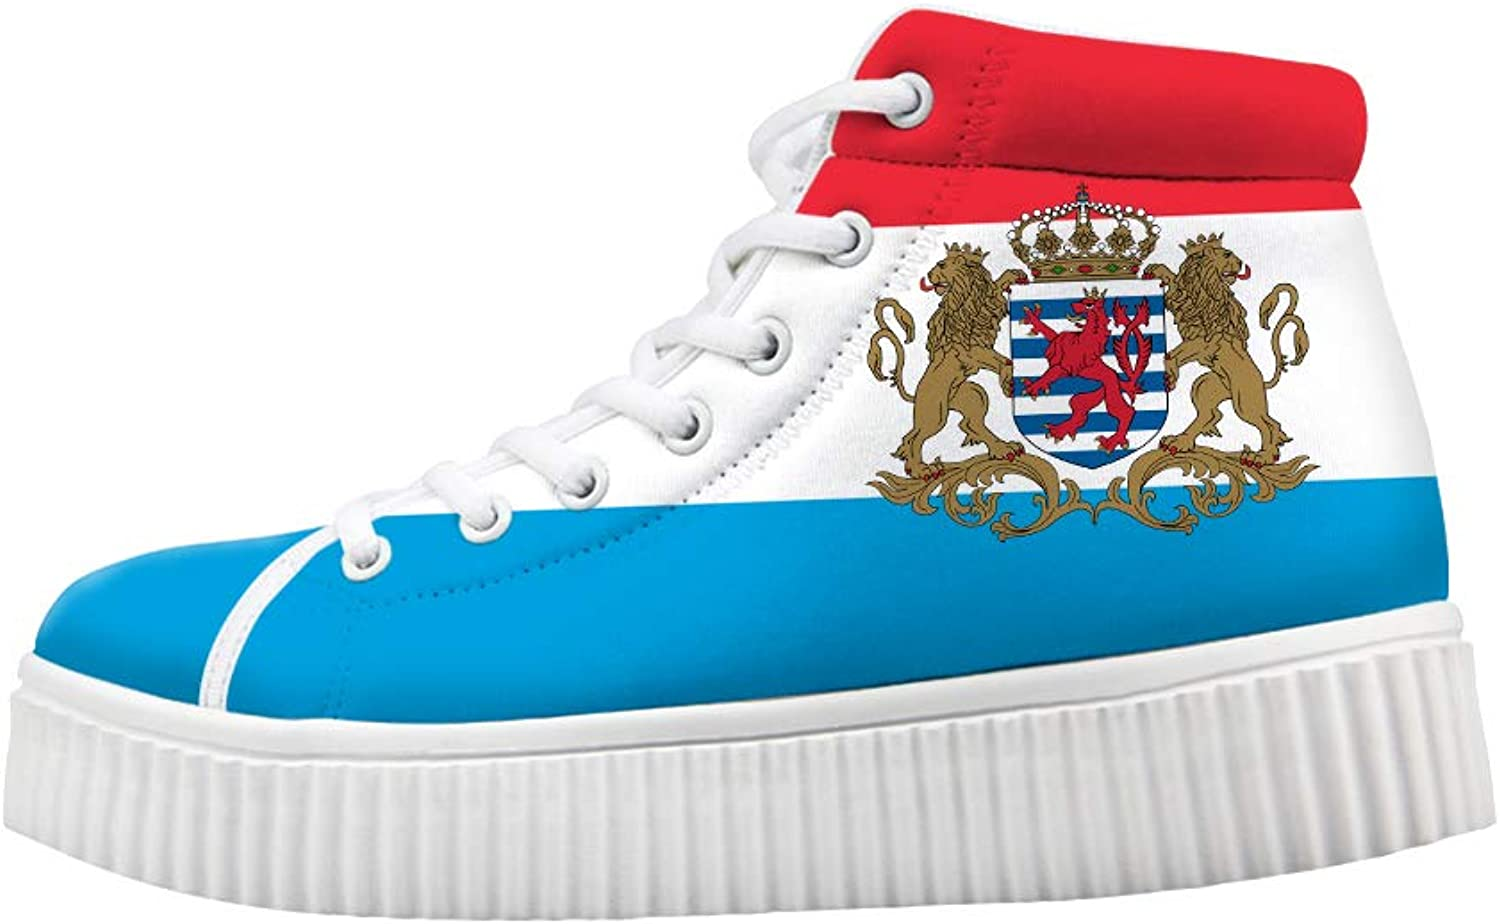 Owaheson Platform Lace up Sneaker Casual Chunky Walking shoes High Top Women Luxembourg Flag National Emblem